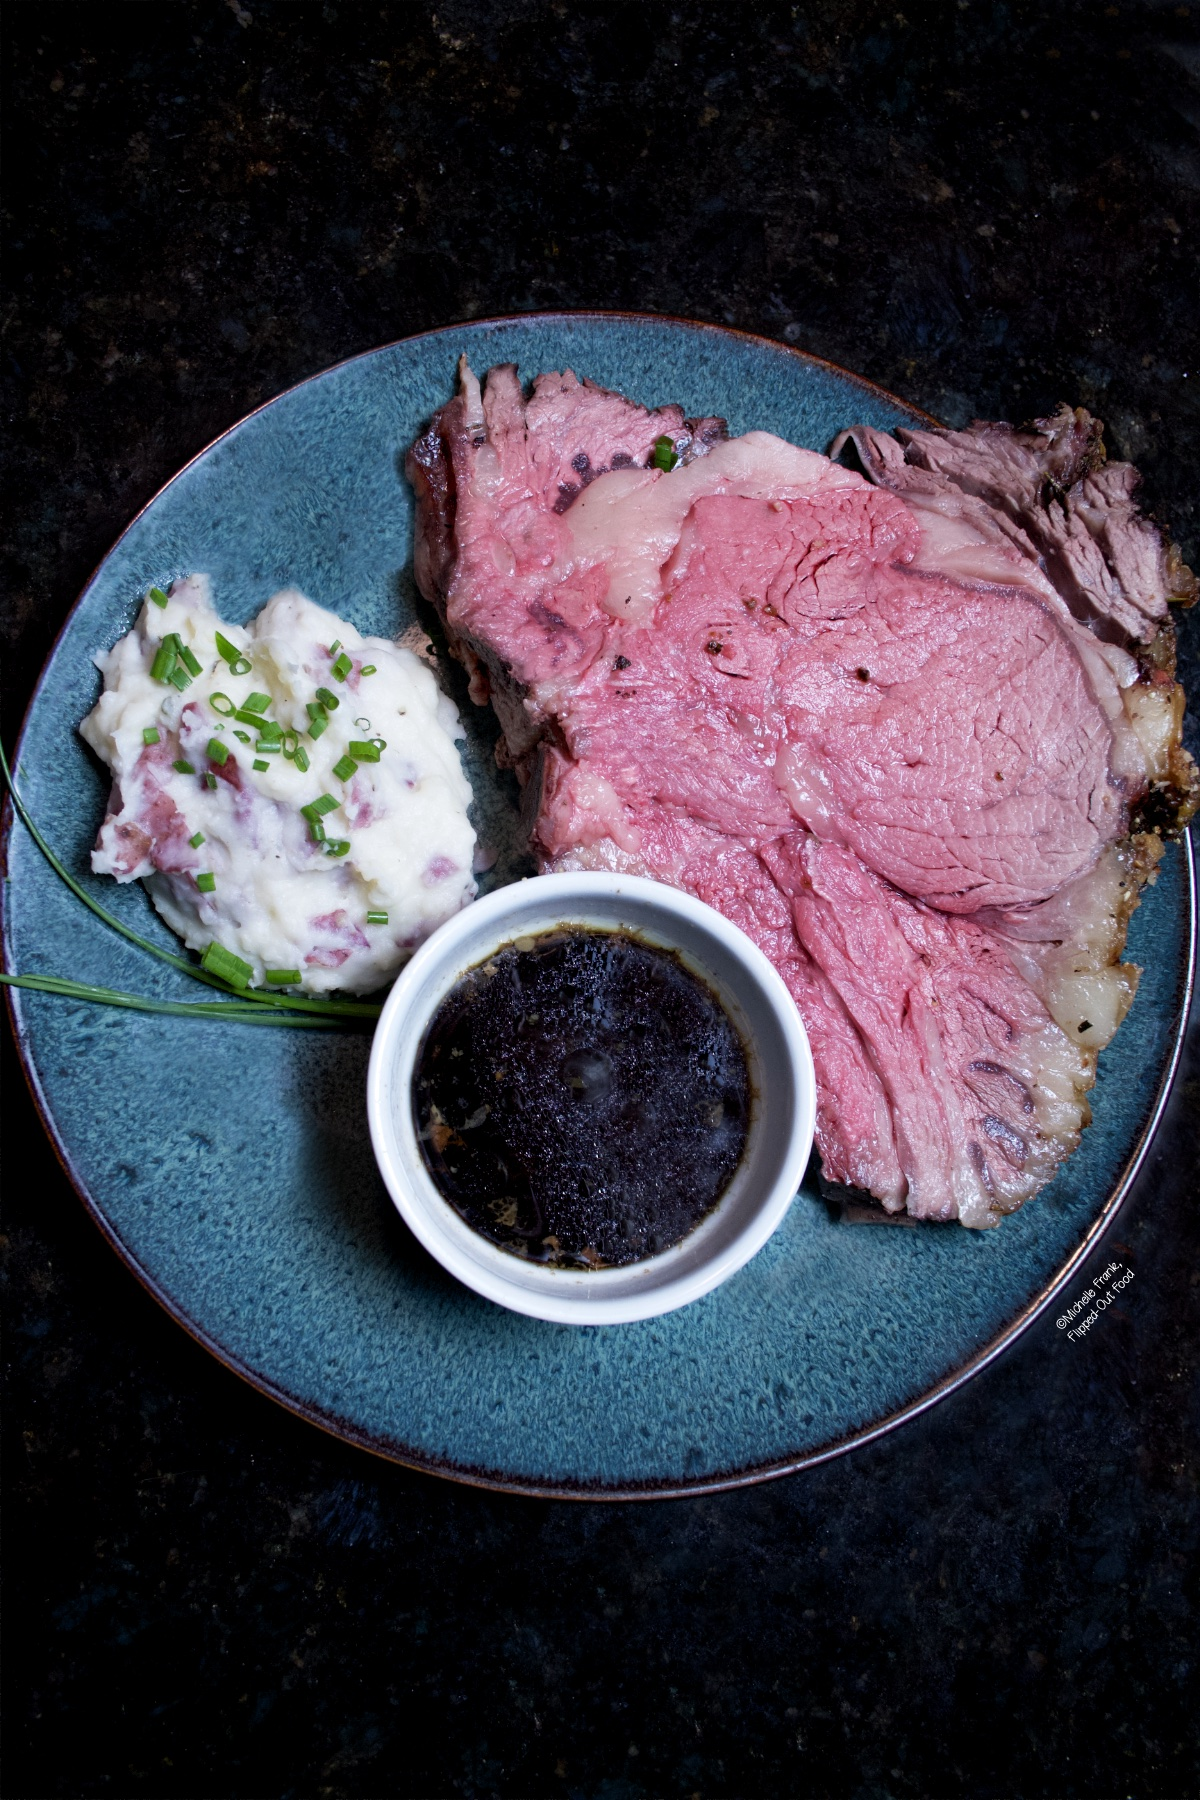 Date Night Prime Rib Roast with simple au jus. A giant slab of prime rib is served on a blue ceramic plate next to a white ramekin of au jus and a serving of skin-on mashed potatoes with horseradish.